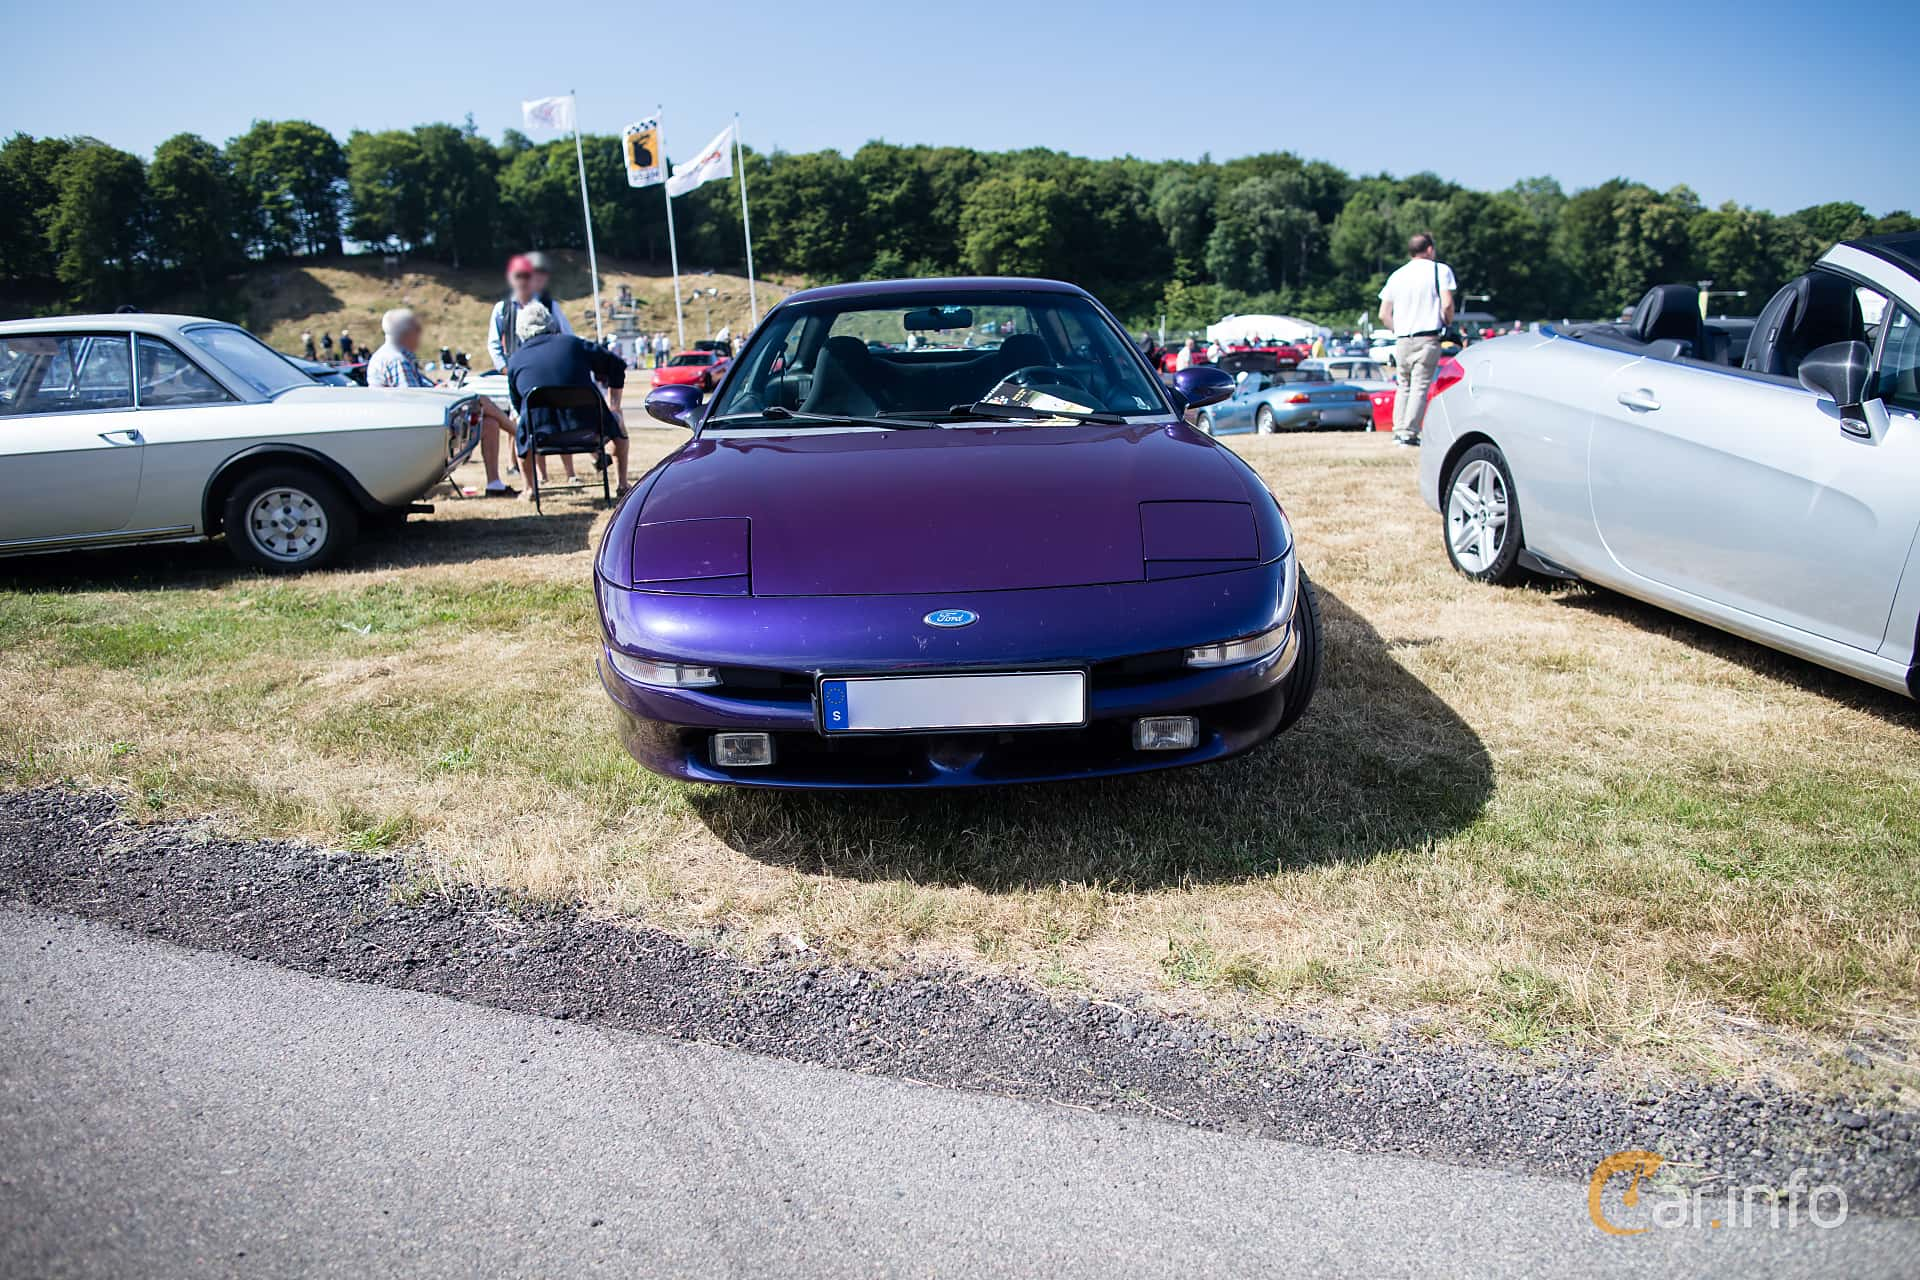 Ford Probe 2.5 V6 Manual, 163hp, 1997 at Svenskt sportvagnsmeeting 2018